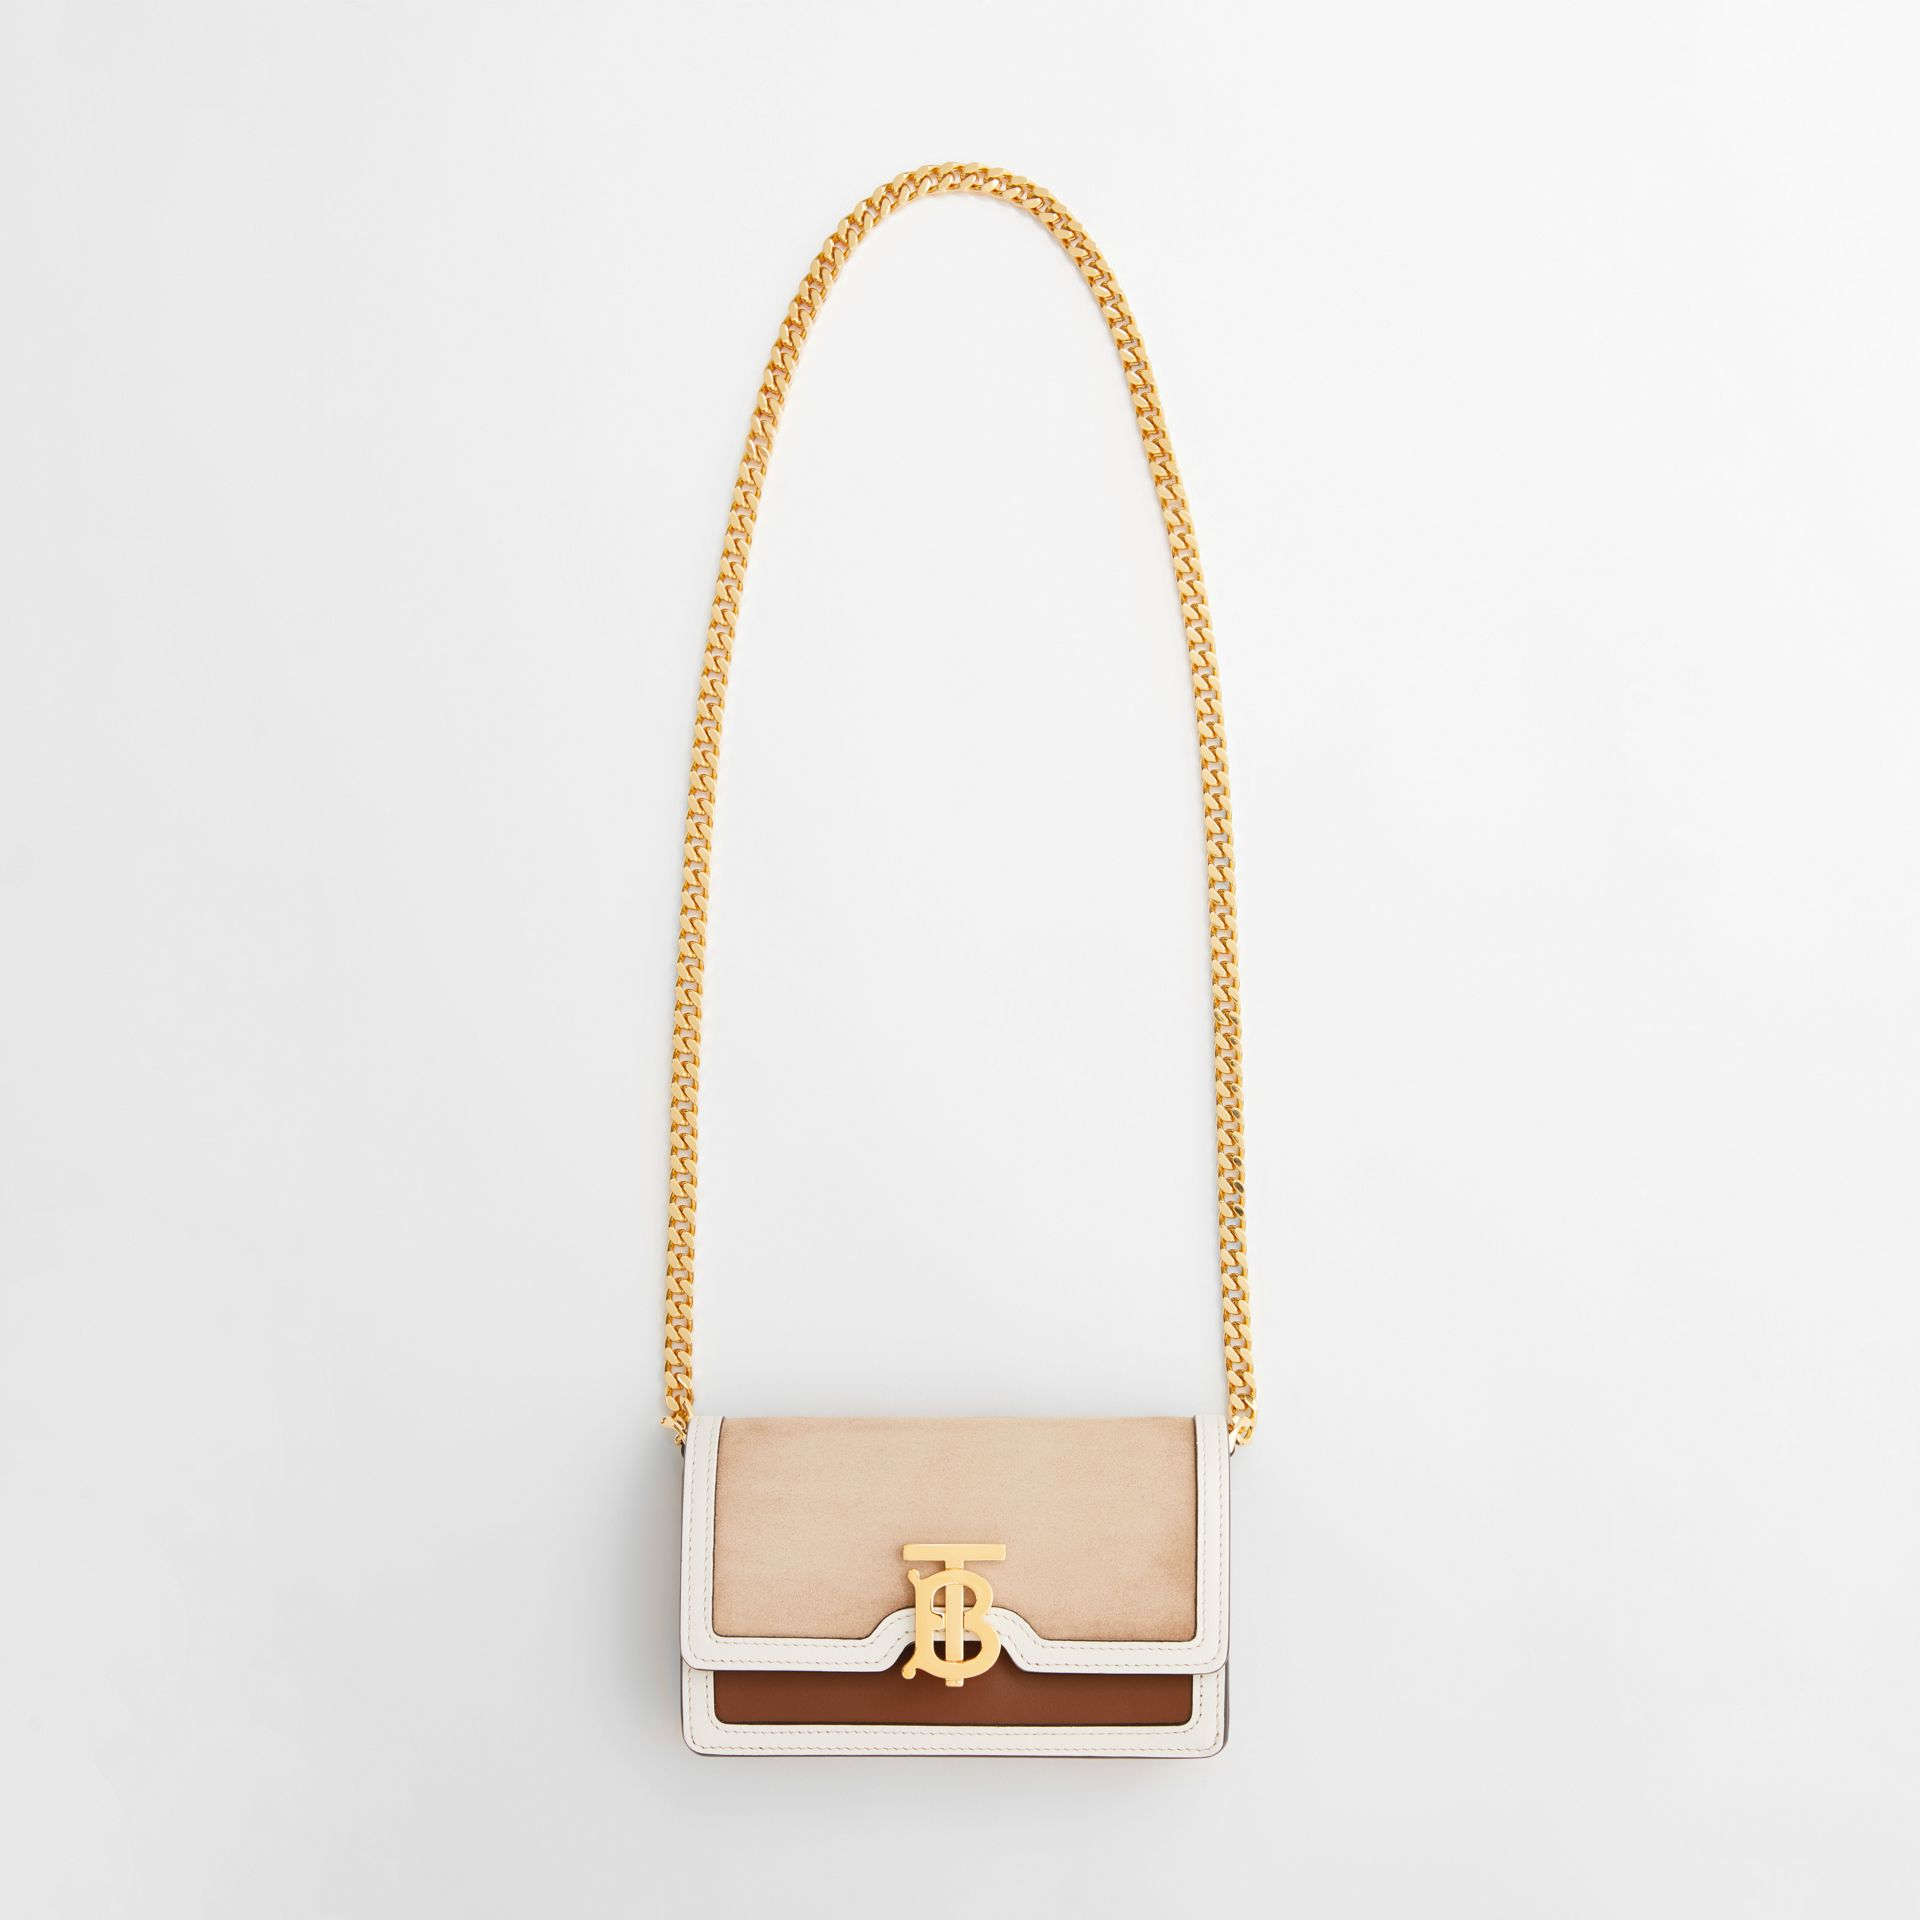 Mini Suede and Two-tone Leather Shoulder Bag in Biscuit - Women | Burberry United Kingdom - gallery image 3